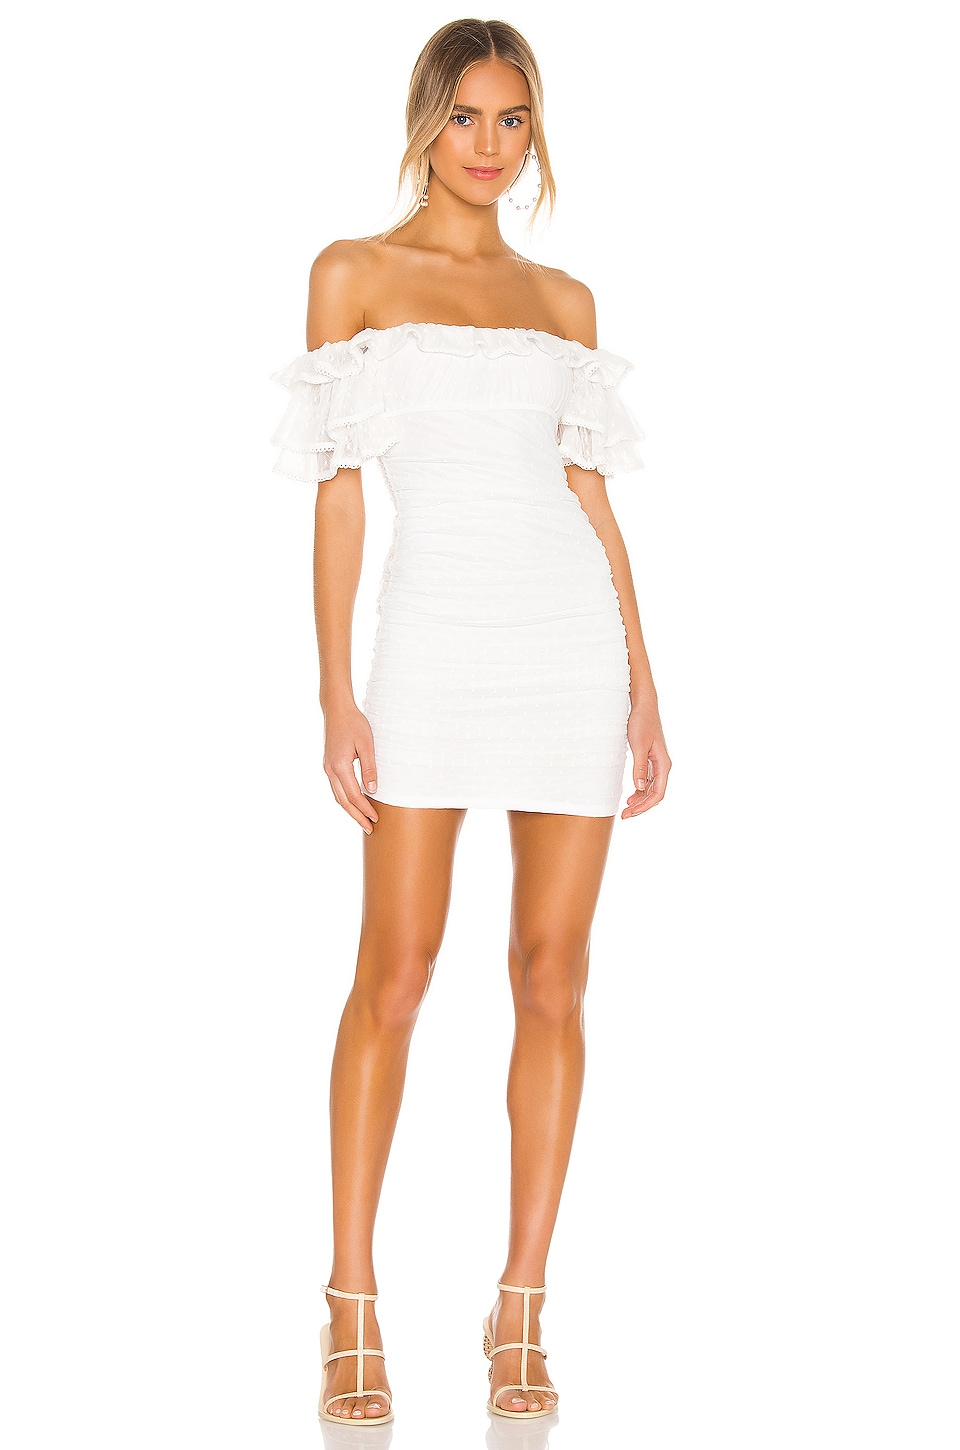 Eva Mini Dress             Camila Coelho                                                                                                       CA$ 300.48 16